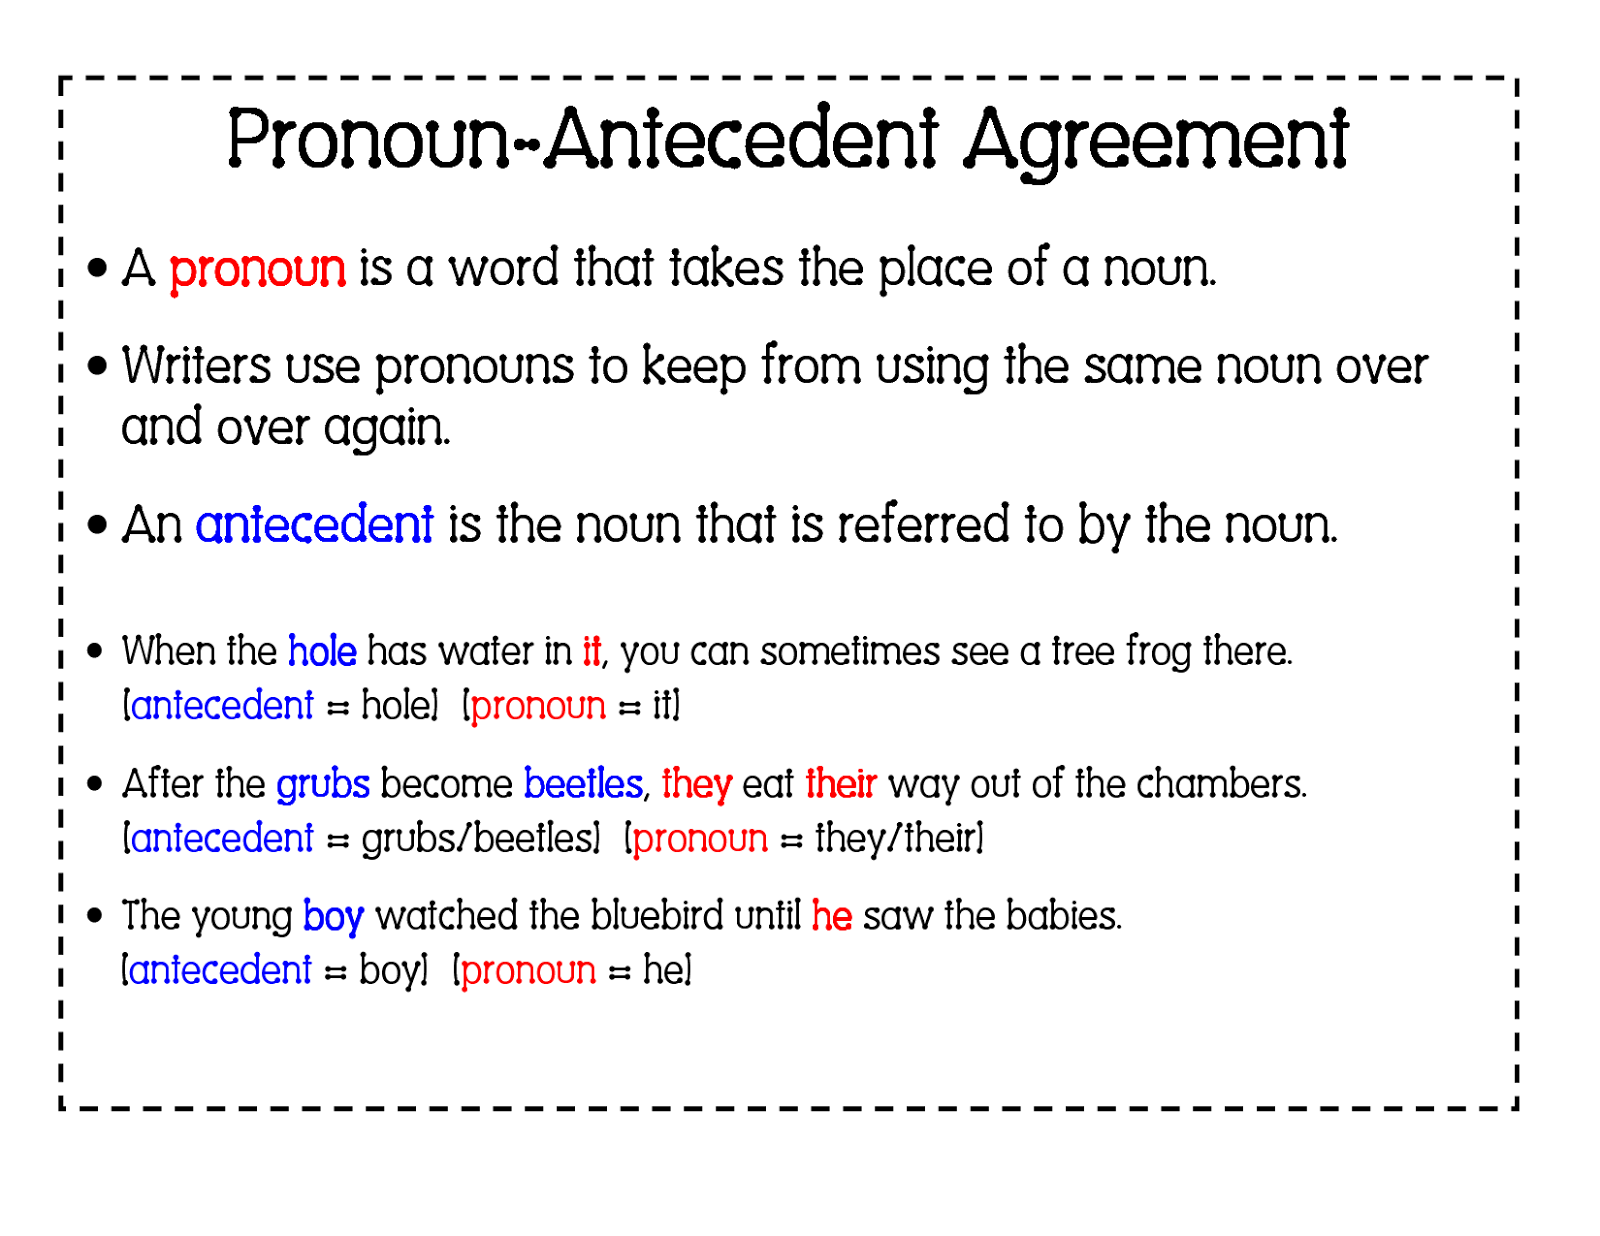 Worksheets Pronoun Agreement Worksheet 6th grade english with mr t pronoun antecedent agreement part 2 review practice identifying pronouns antecedents socrative